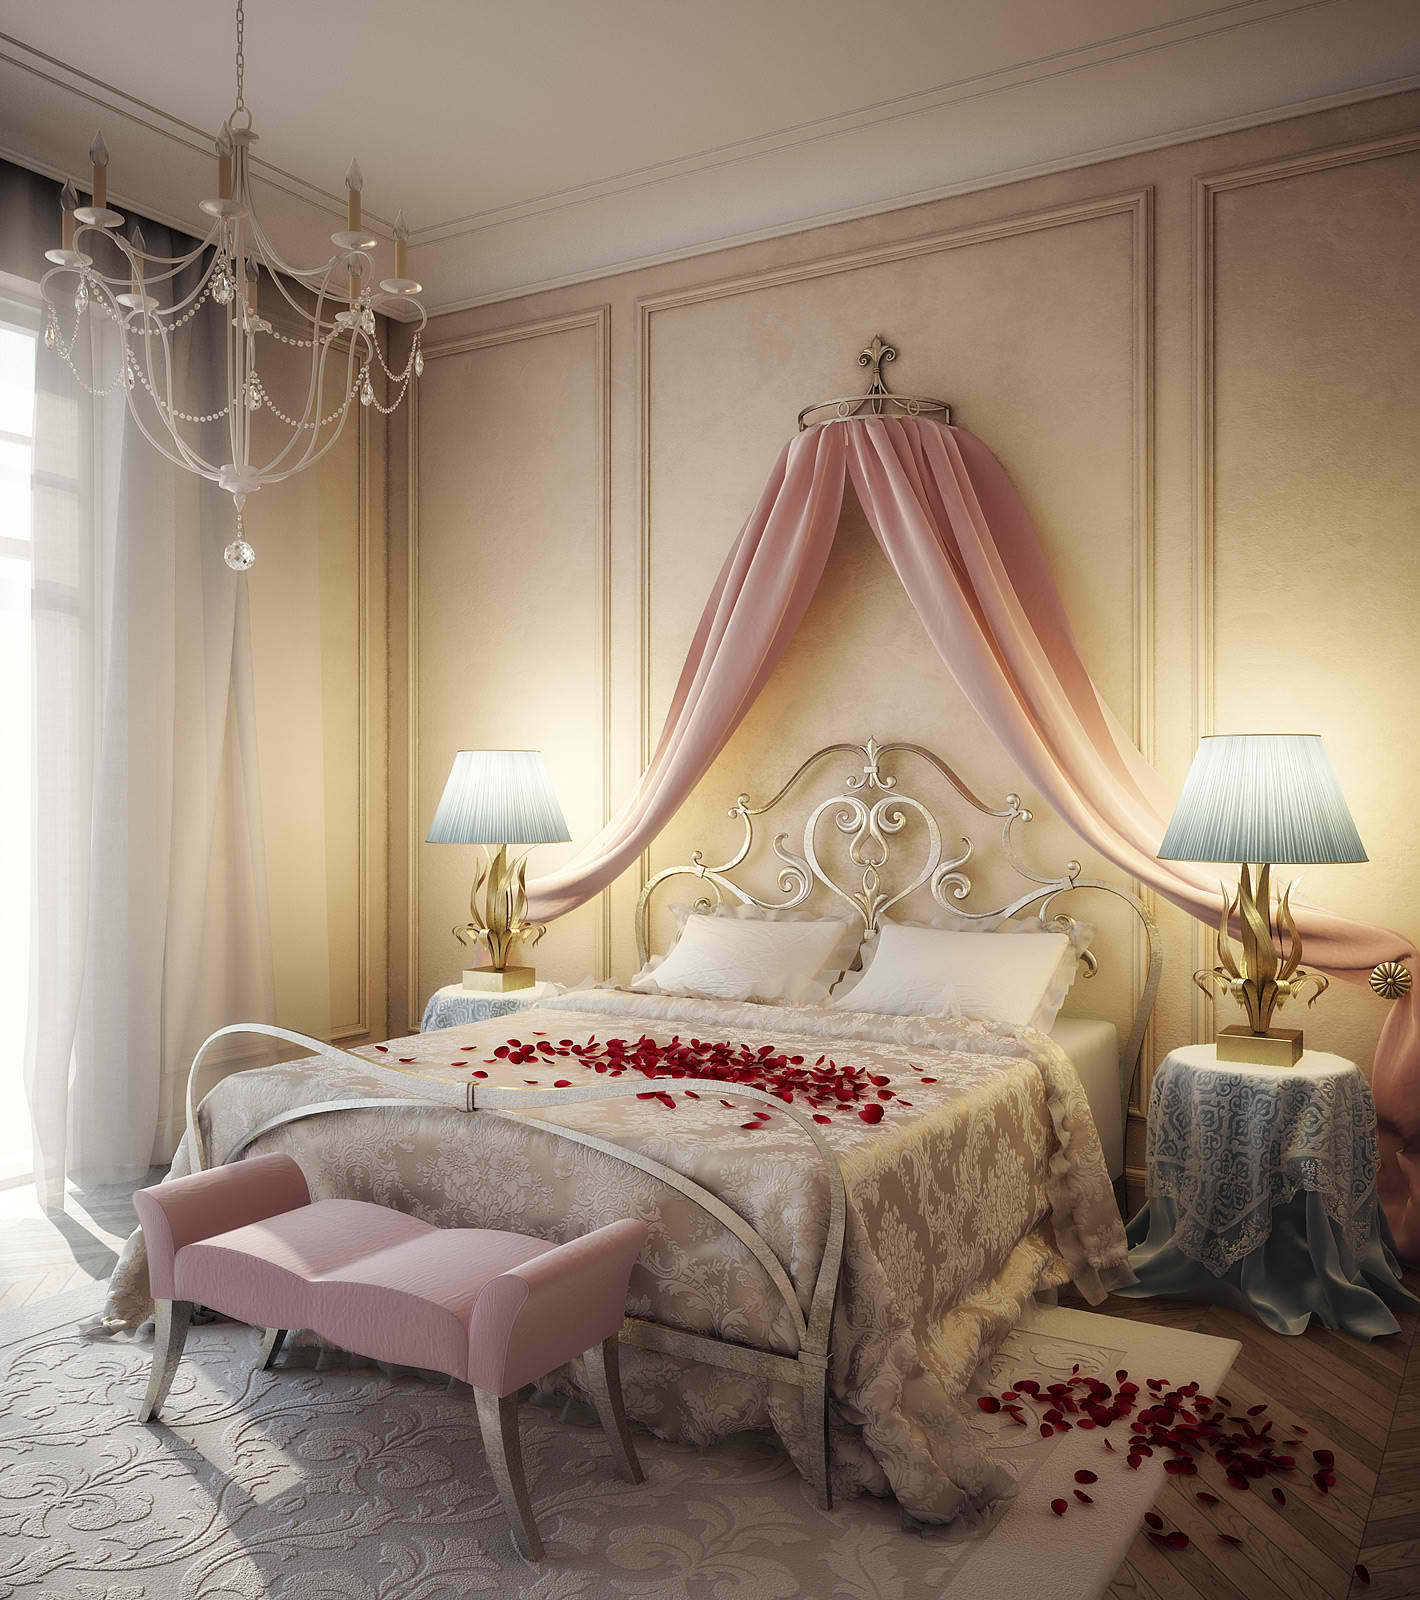 20 Romantic Bedroom Ideas